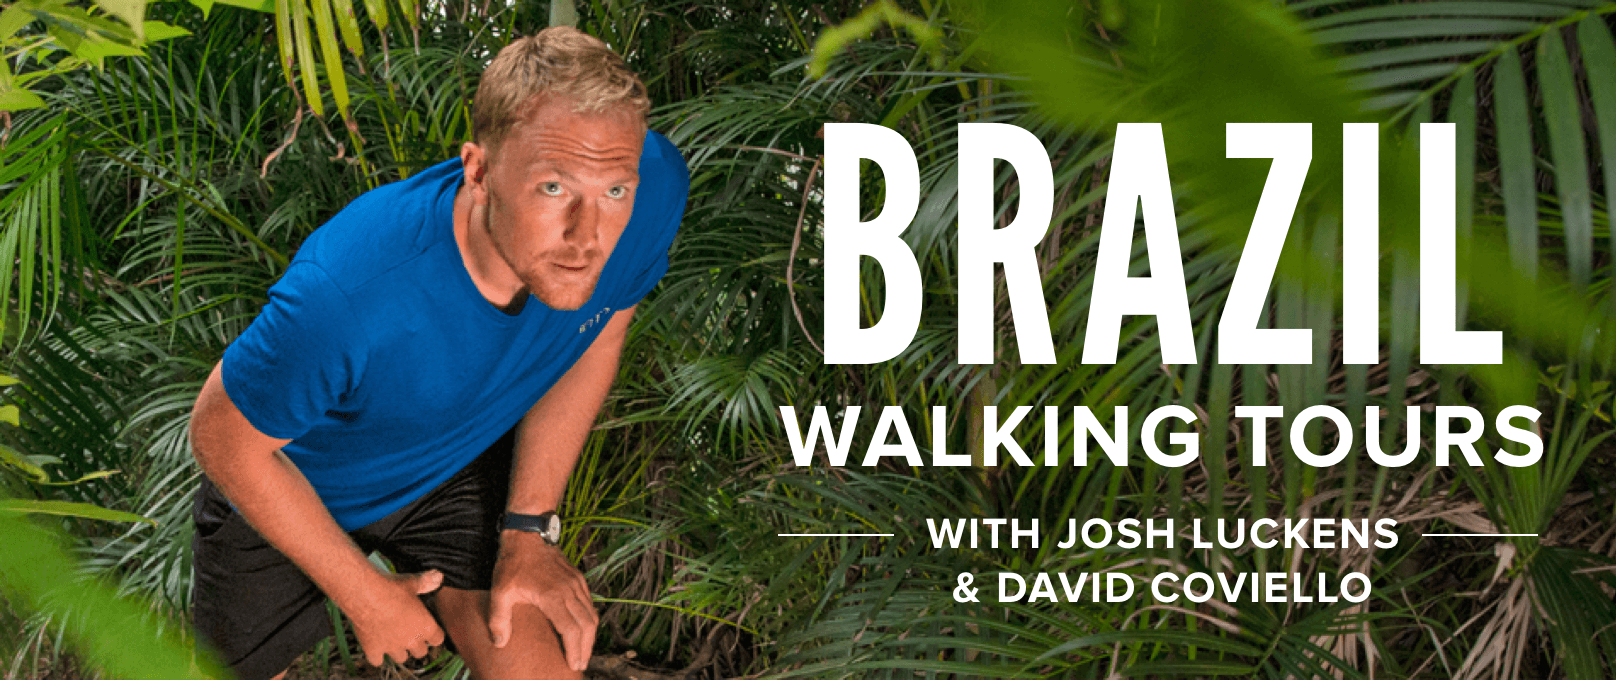 iFit Brazil Walking Tours with Alex Gregory walking workouts